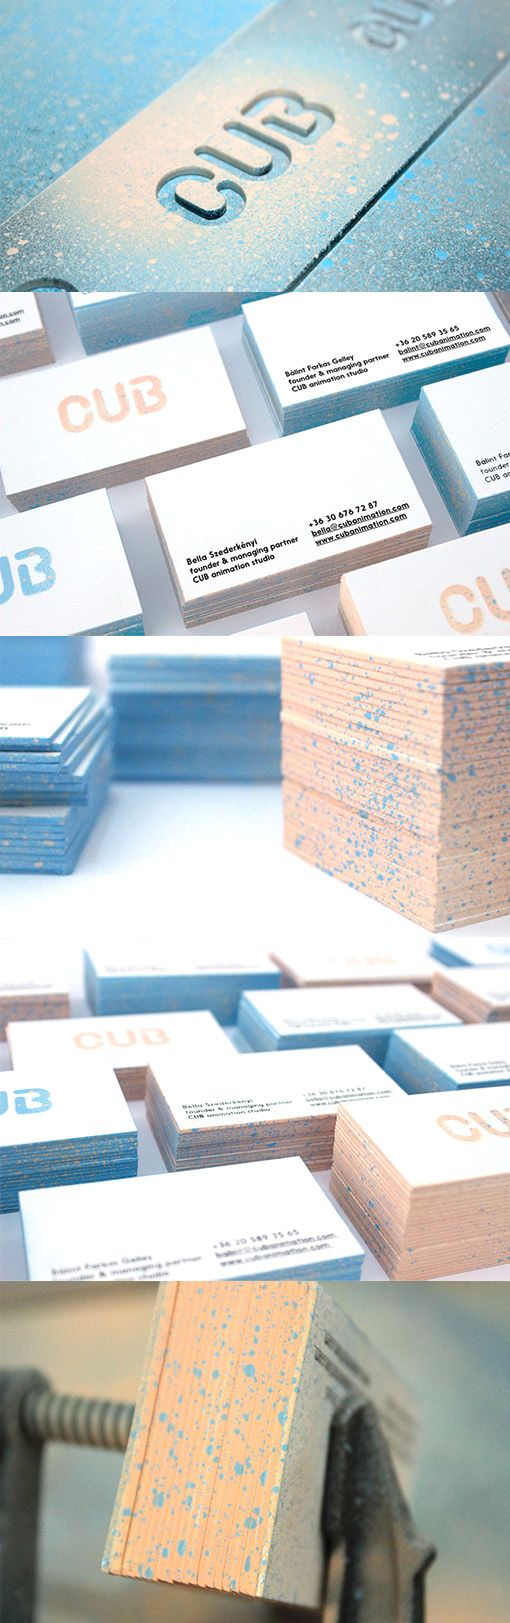 Creative DIY Spraypaint And Lasercut Perspex Edge Painted Business Card